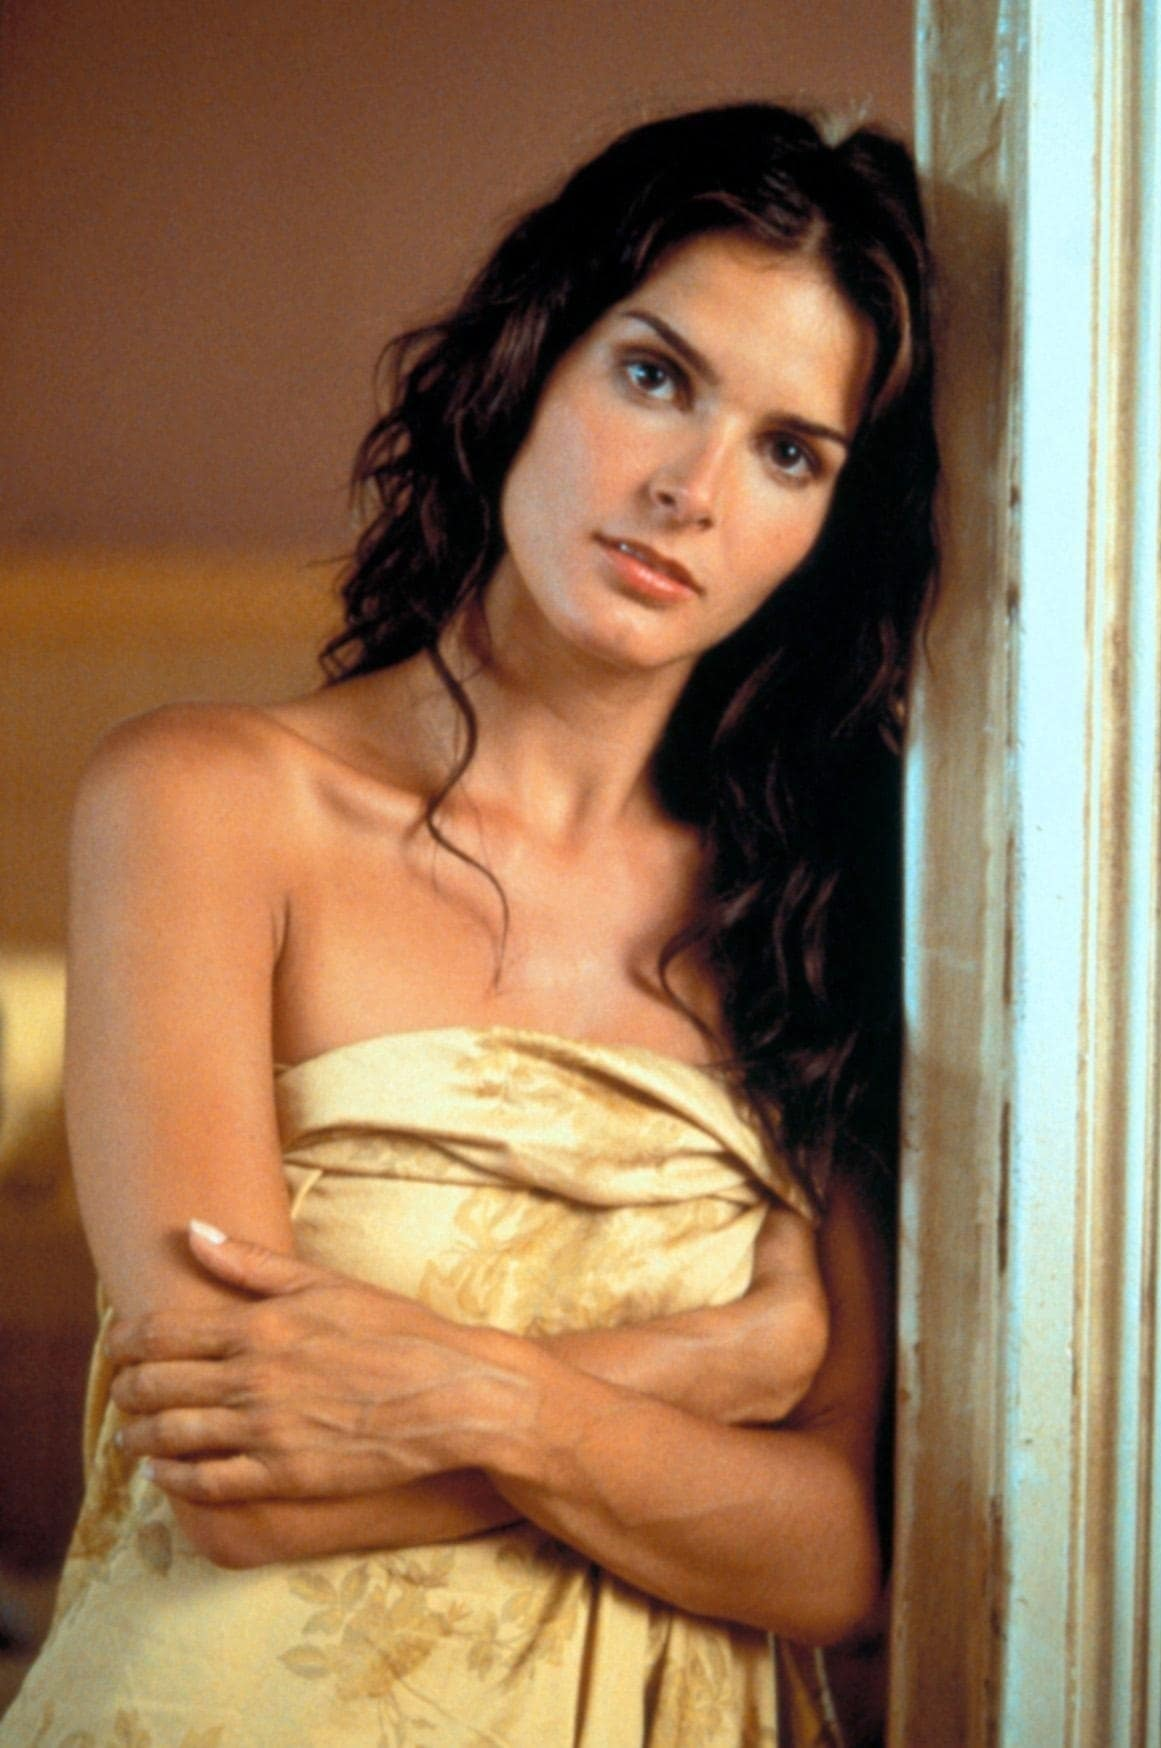 Angie Harmon Xnxx 61 hot and sexy pictures of angie harmon are hypnotising to